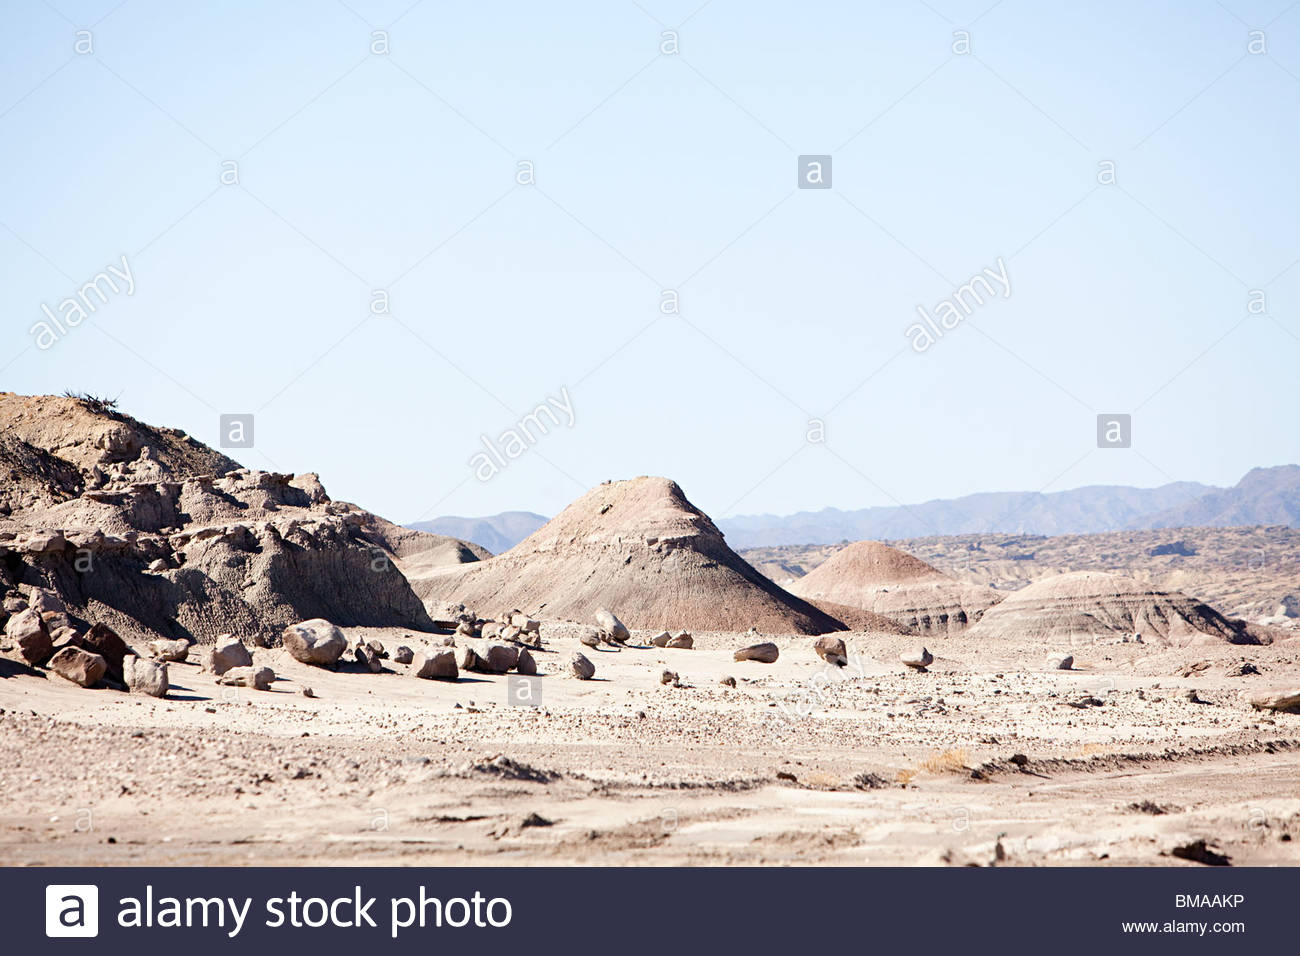 Rock formations in san juan province of argentina - Stock Image